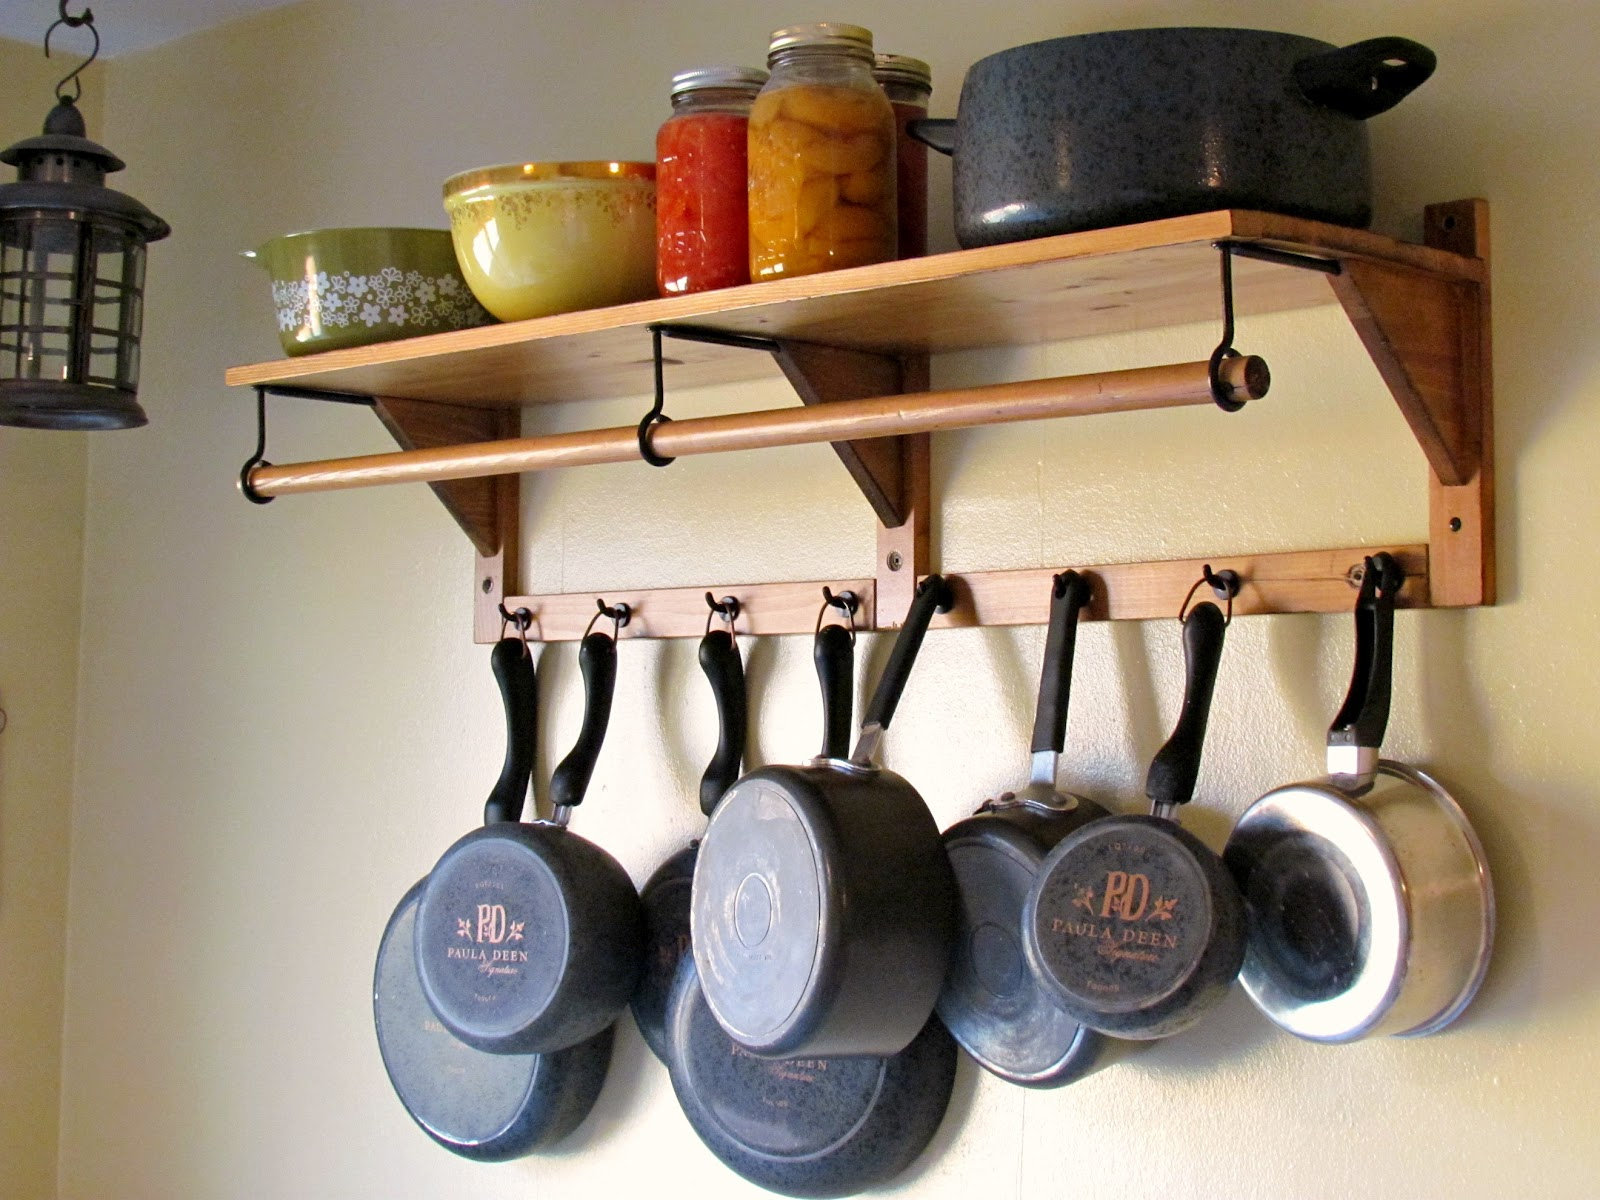 Kitchen Hanging Pan Pot Rack For Organized Kitchen